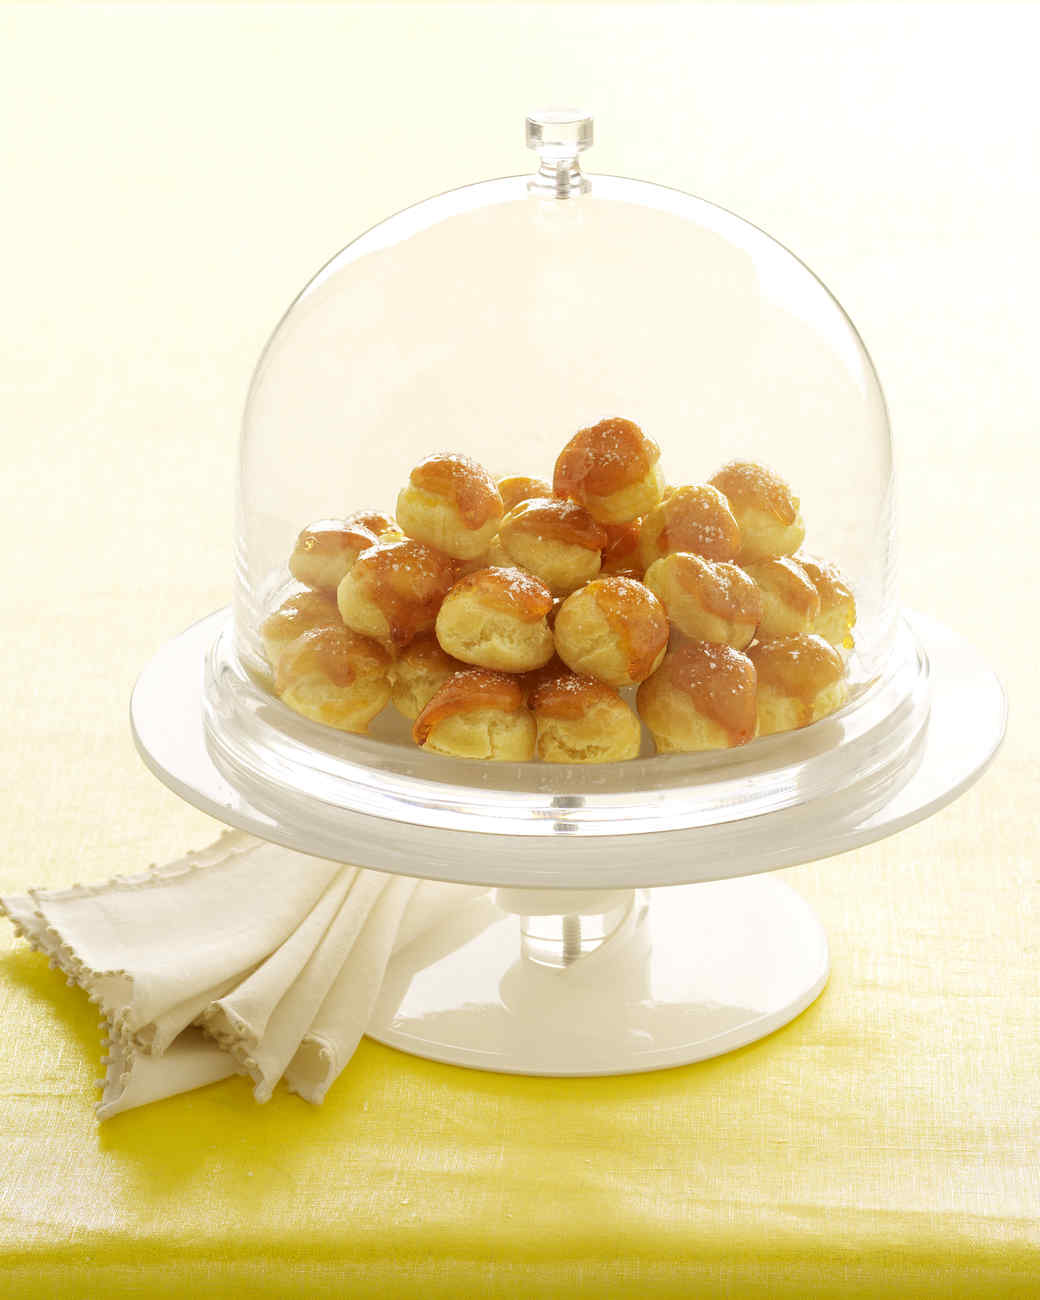 Blue Cheese Gougeres with Caramel and Salt